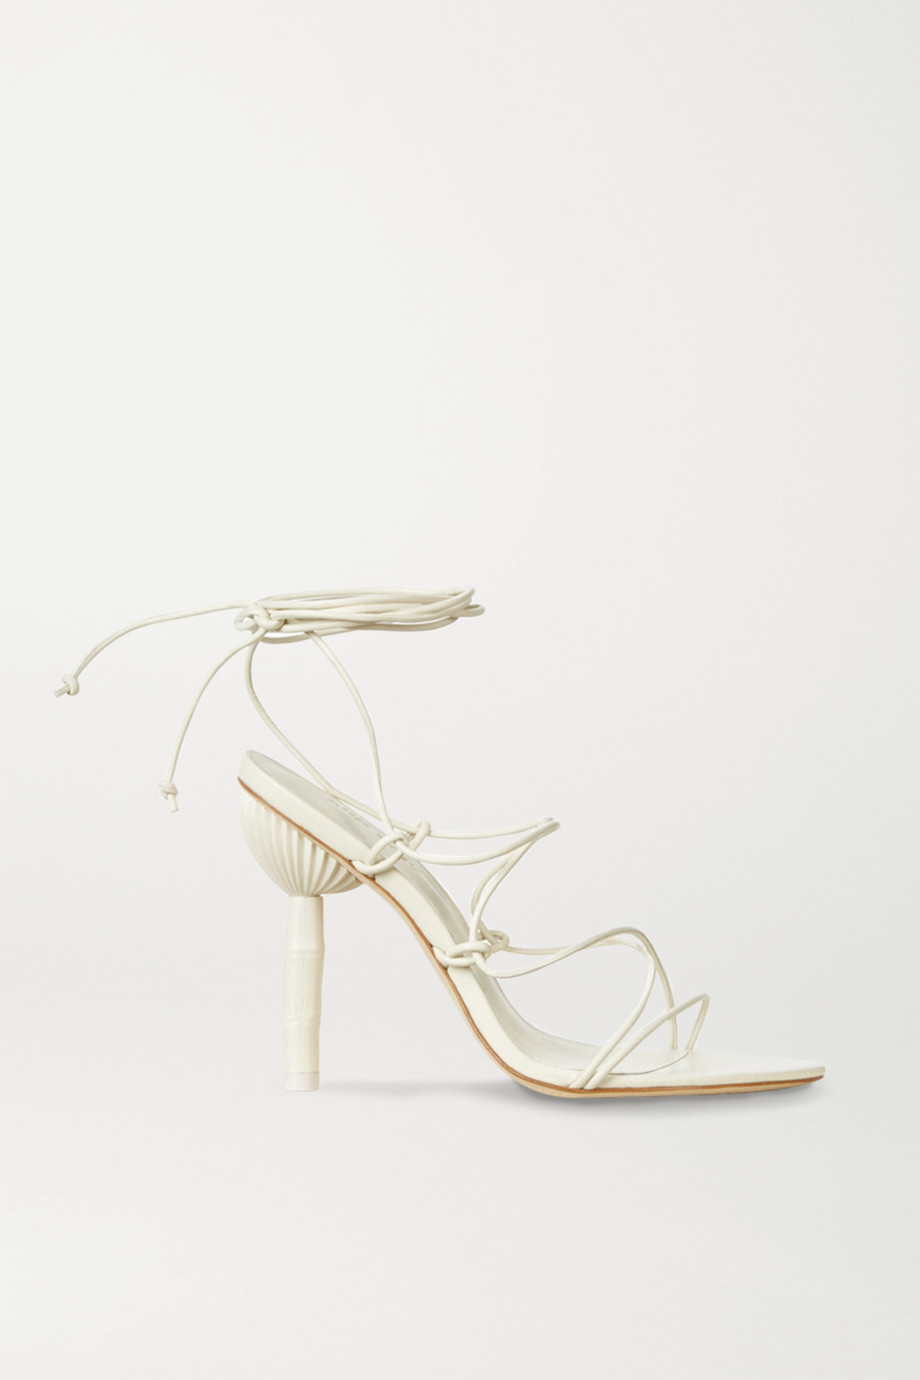 Cult Gaia Soleil leather sandals